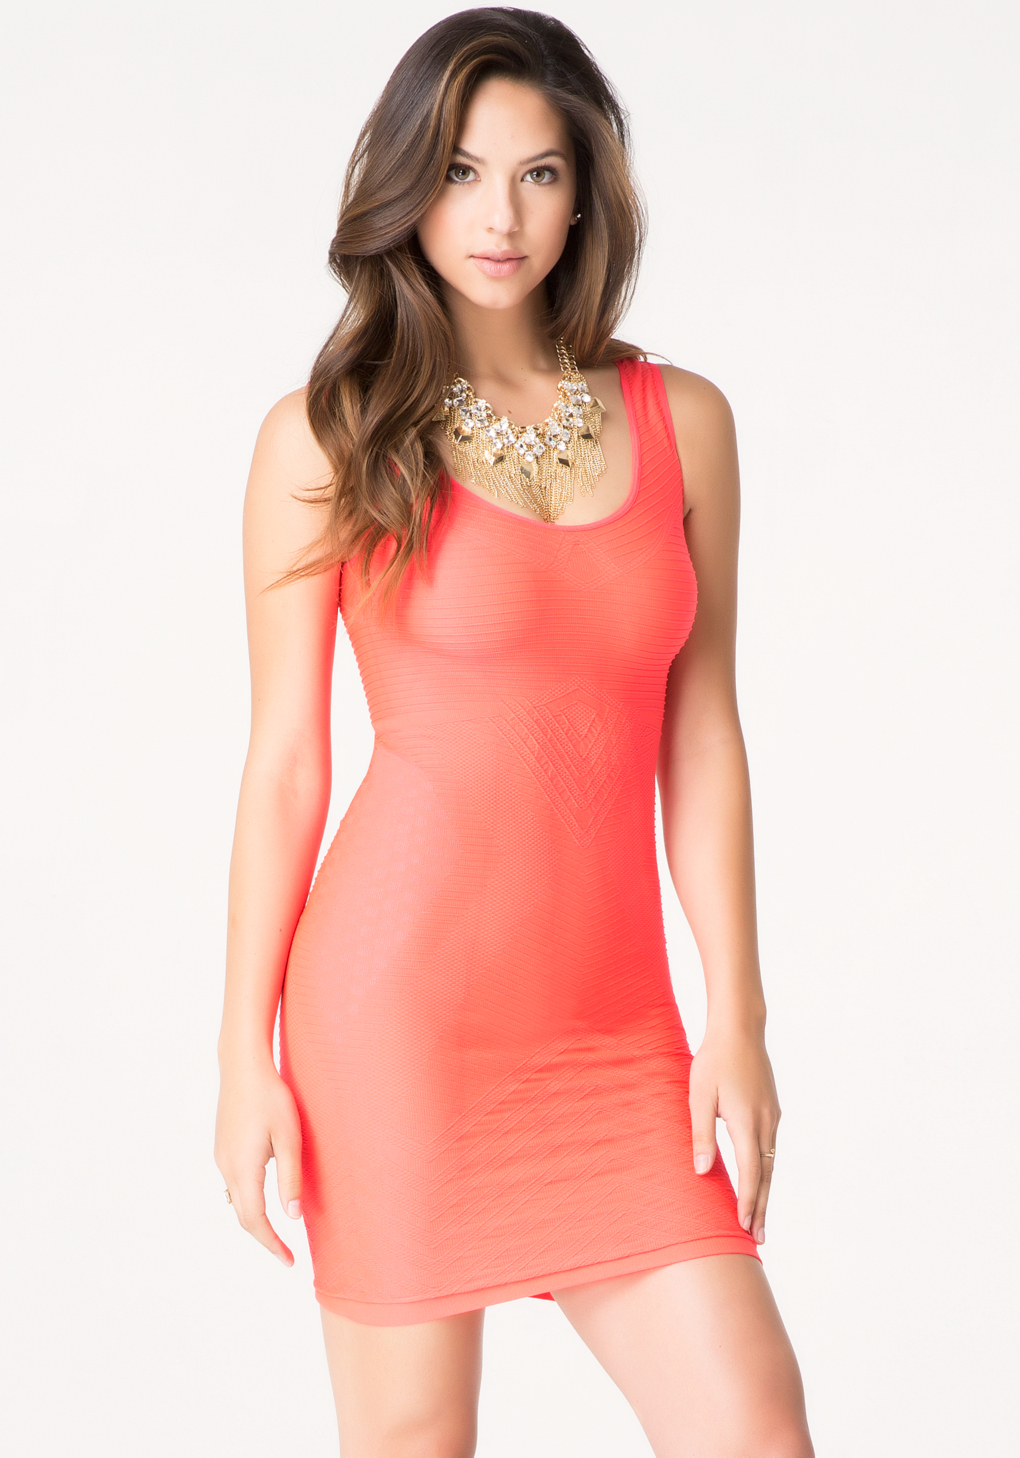 d4fc7eb0 Bebe Textured Back Cutout Dress in Pink - Lyst